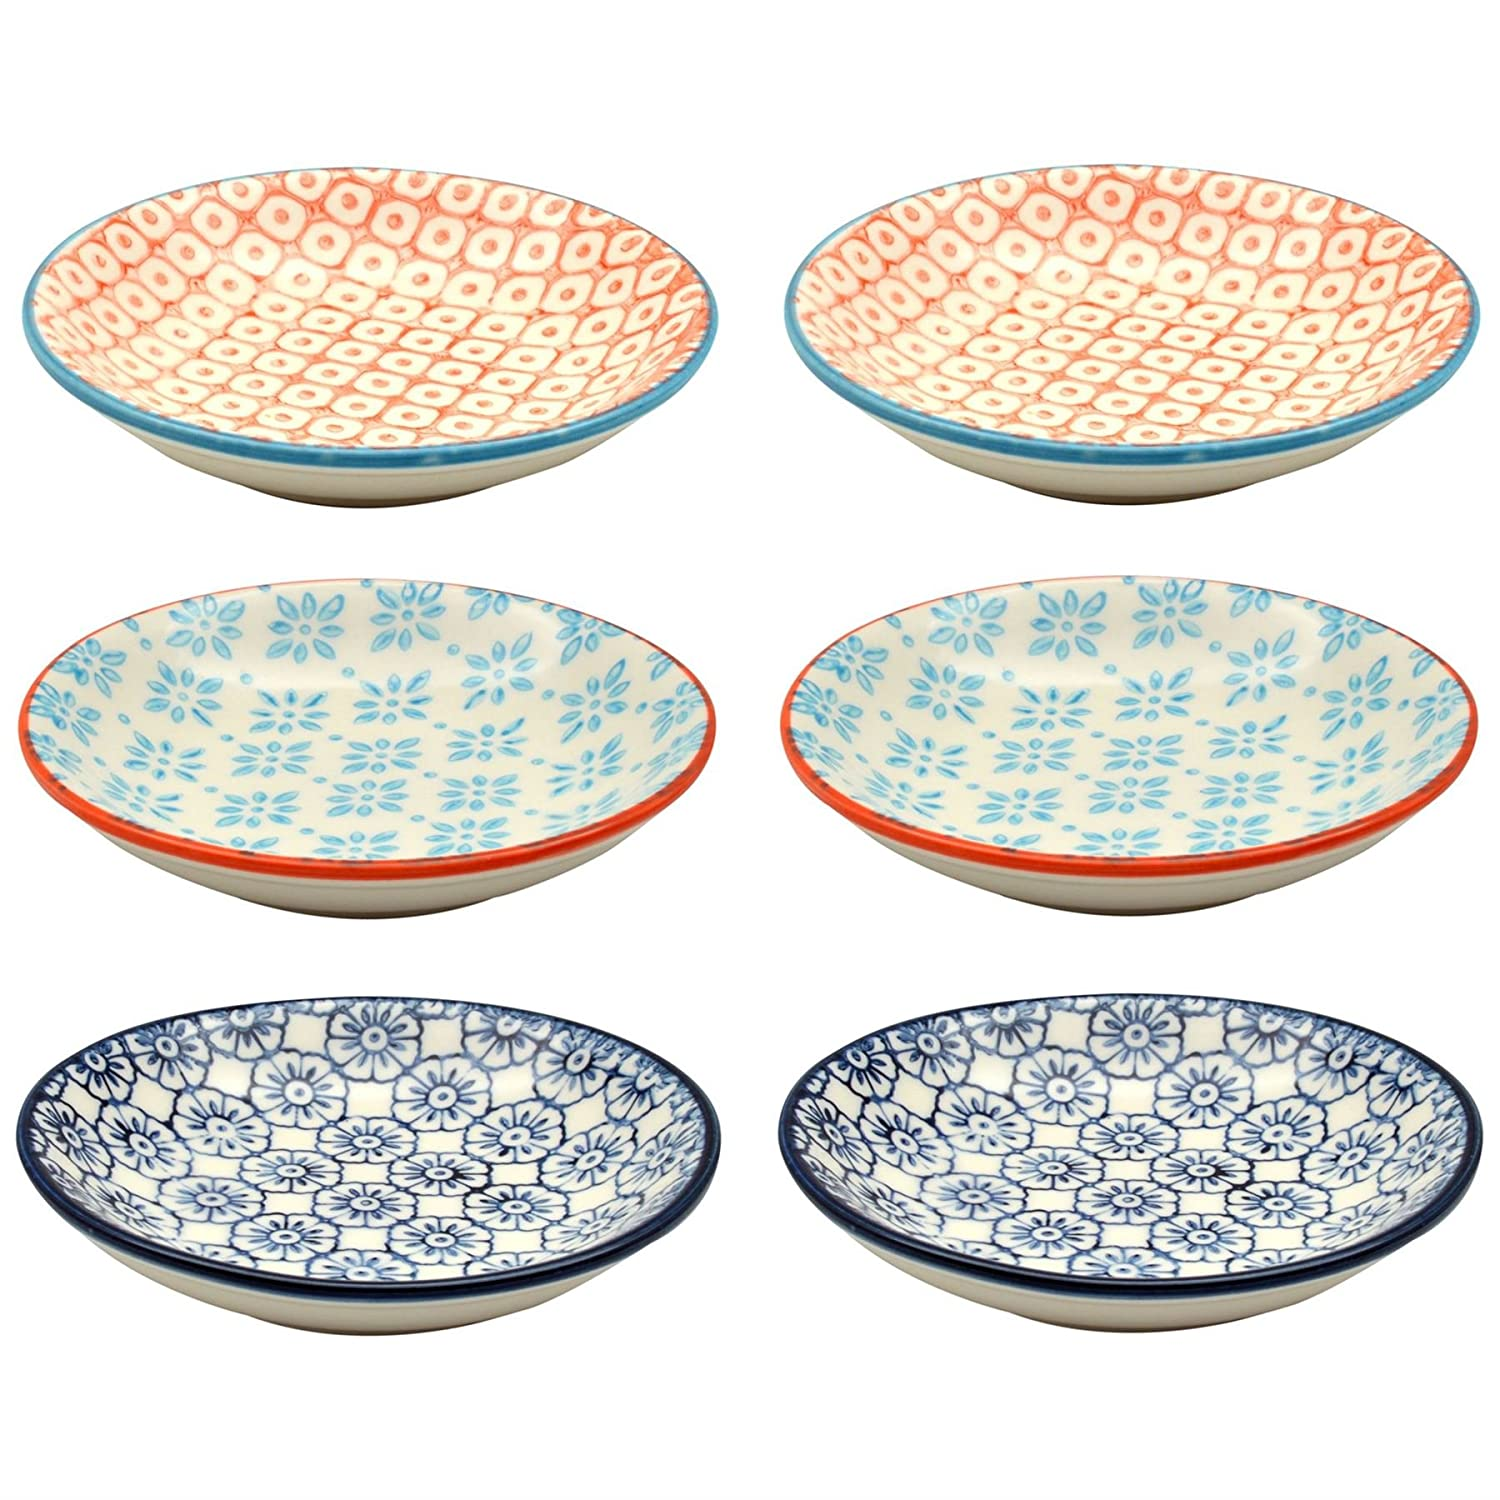 Small Patterned Rice / Soy Sauce / Olive Oil / Dipping Dish - 101mm - Set of 6 Nicola Spring